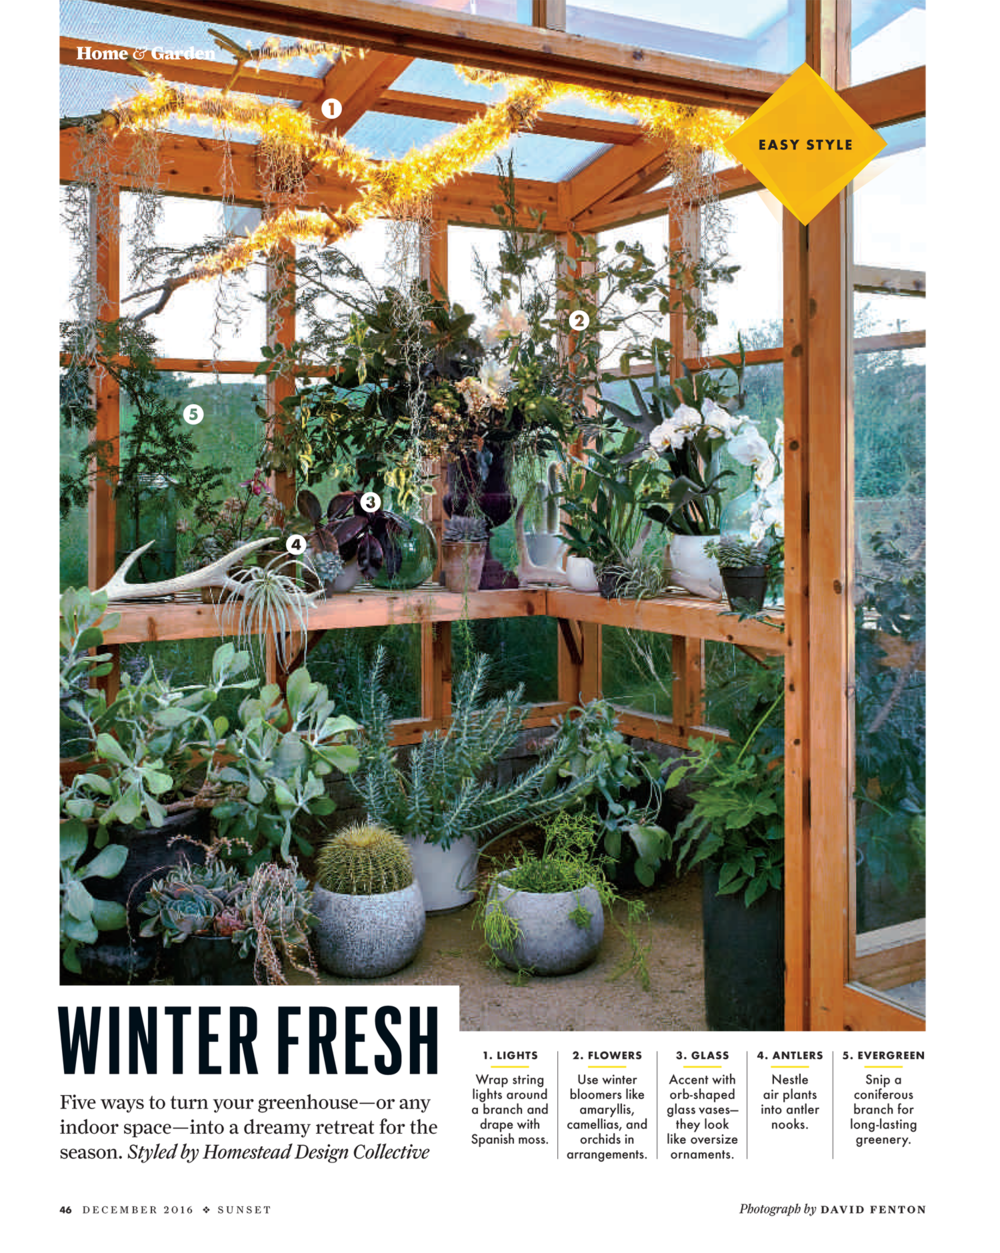 The greenhouse collective - Homestead Takes A Fresh Approach To Transforming Indoor Spaces This Winter